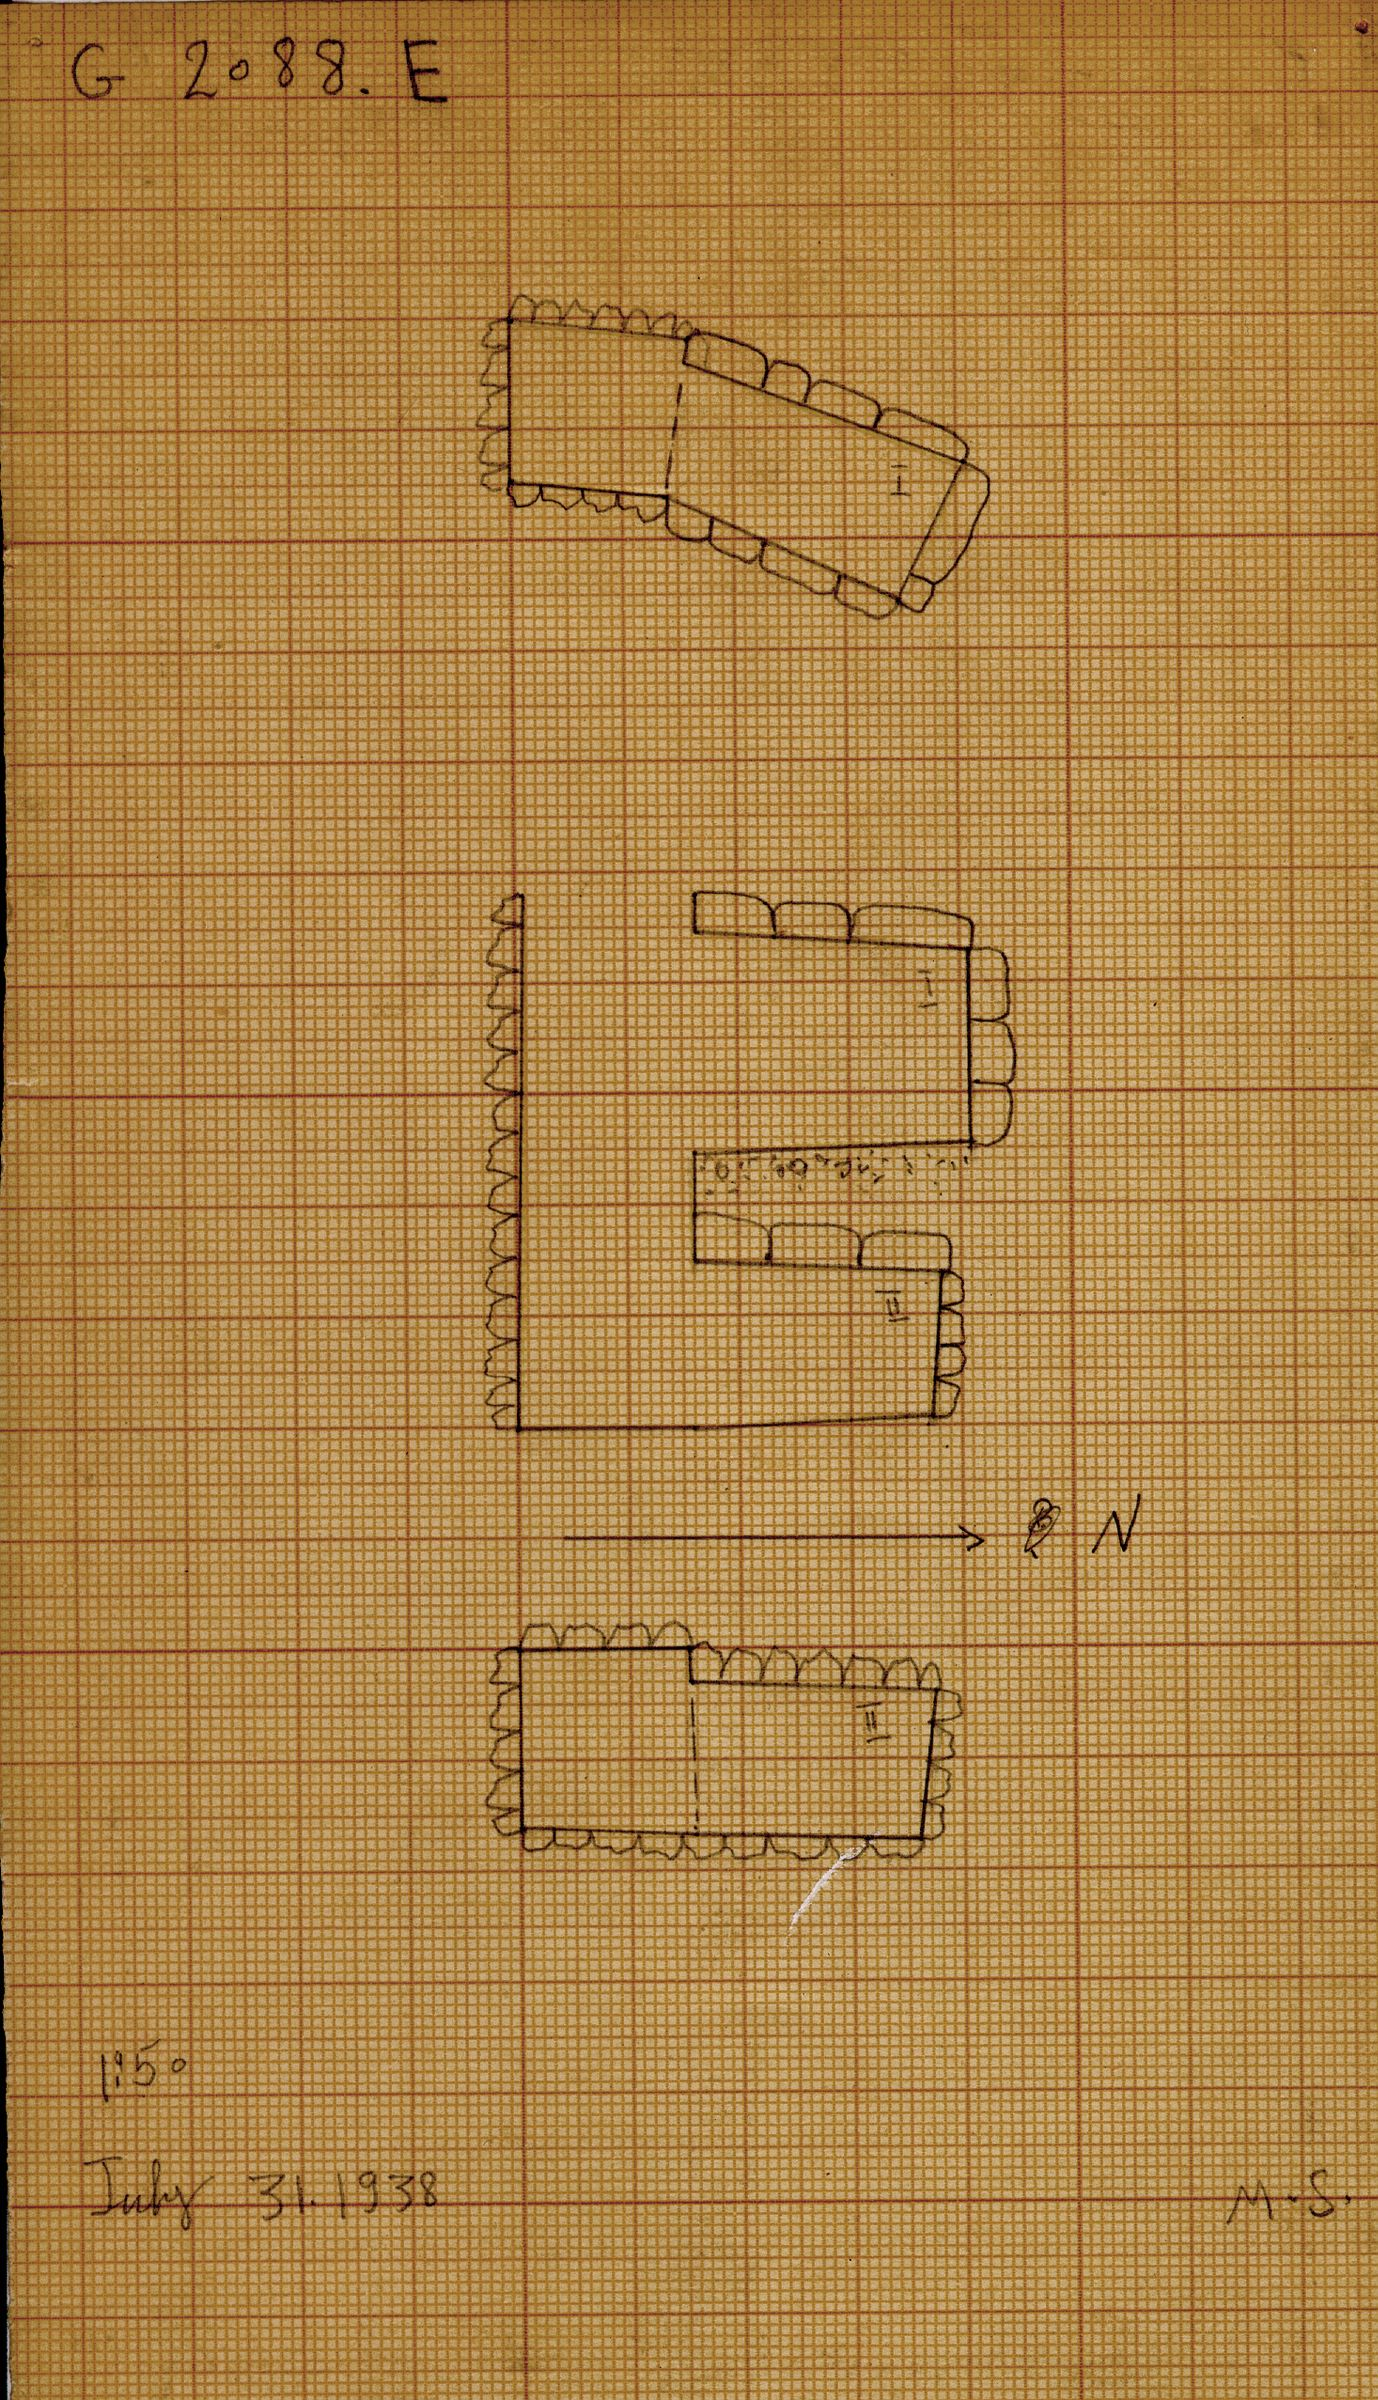 Maps and plans: G 2088, Shaft E